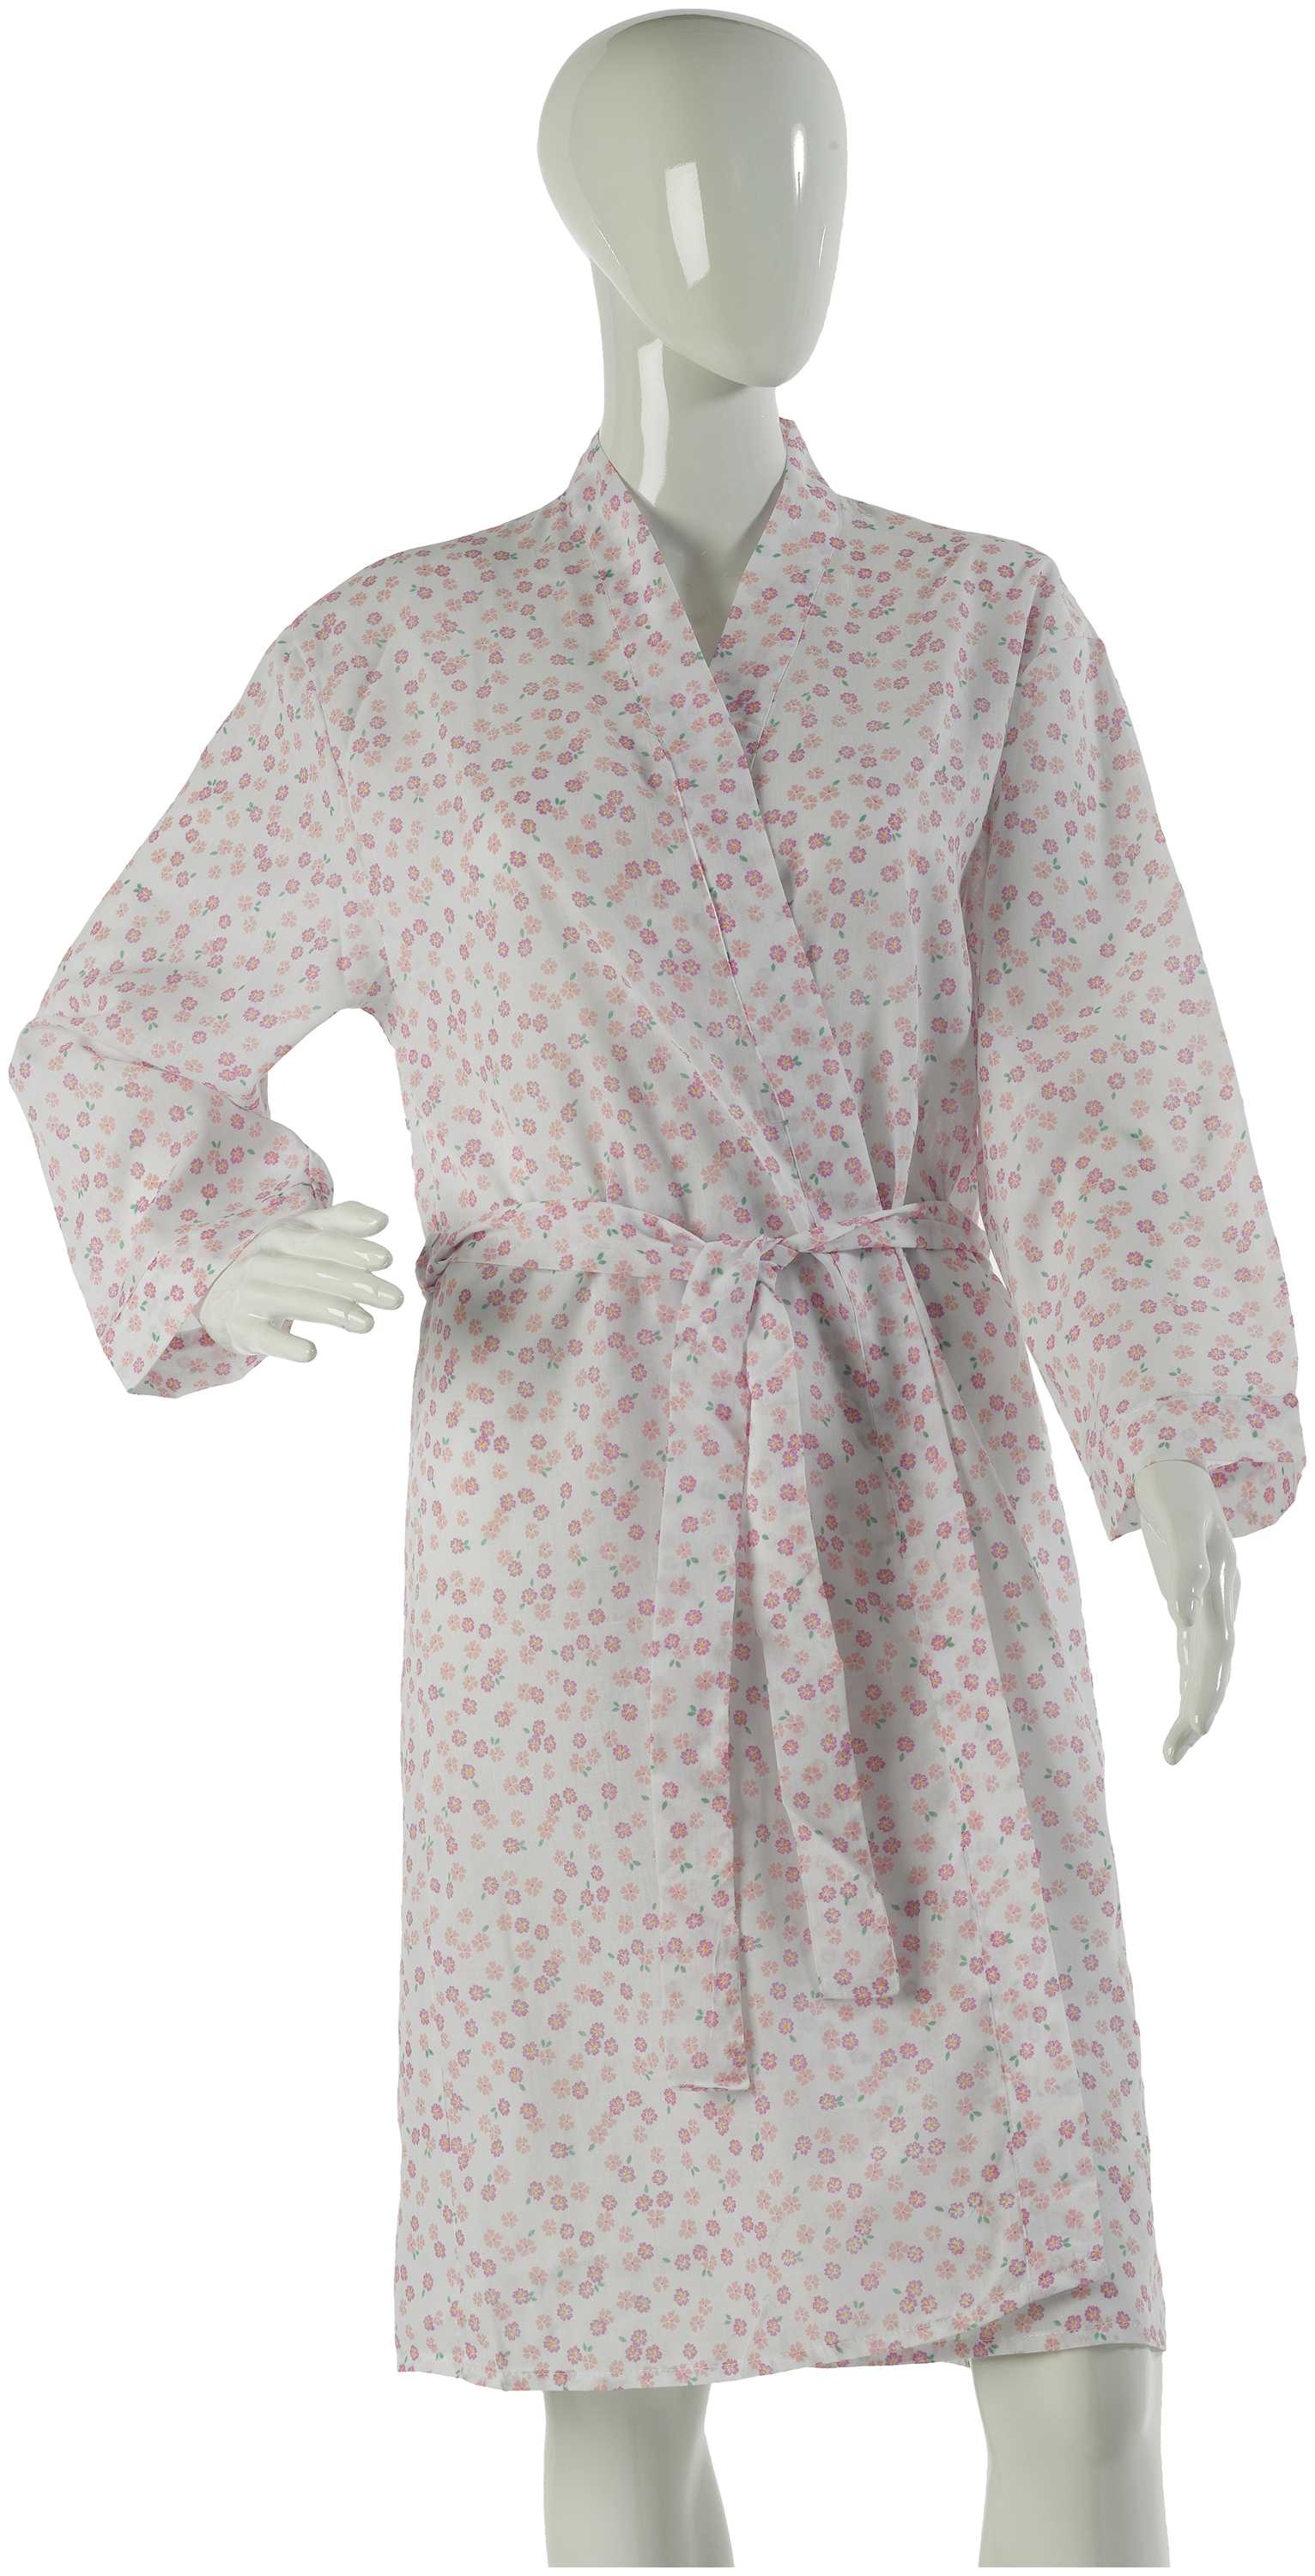 Find all your women's robe needs at hereufilbk.gq From plush robes to flirty robes from your favorite brands like Betsey Johnson, In Bloom by Jonquil, Lauren Ralph Lauren, Oscar de la Renta Pink Label and more Dillard's has all the robes you crave.